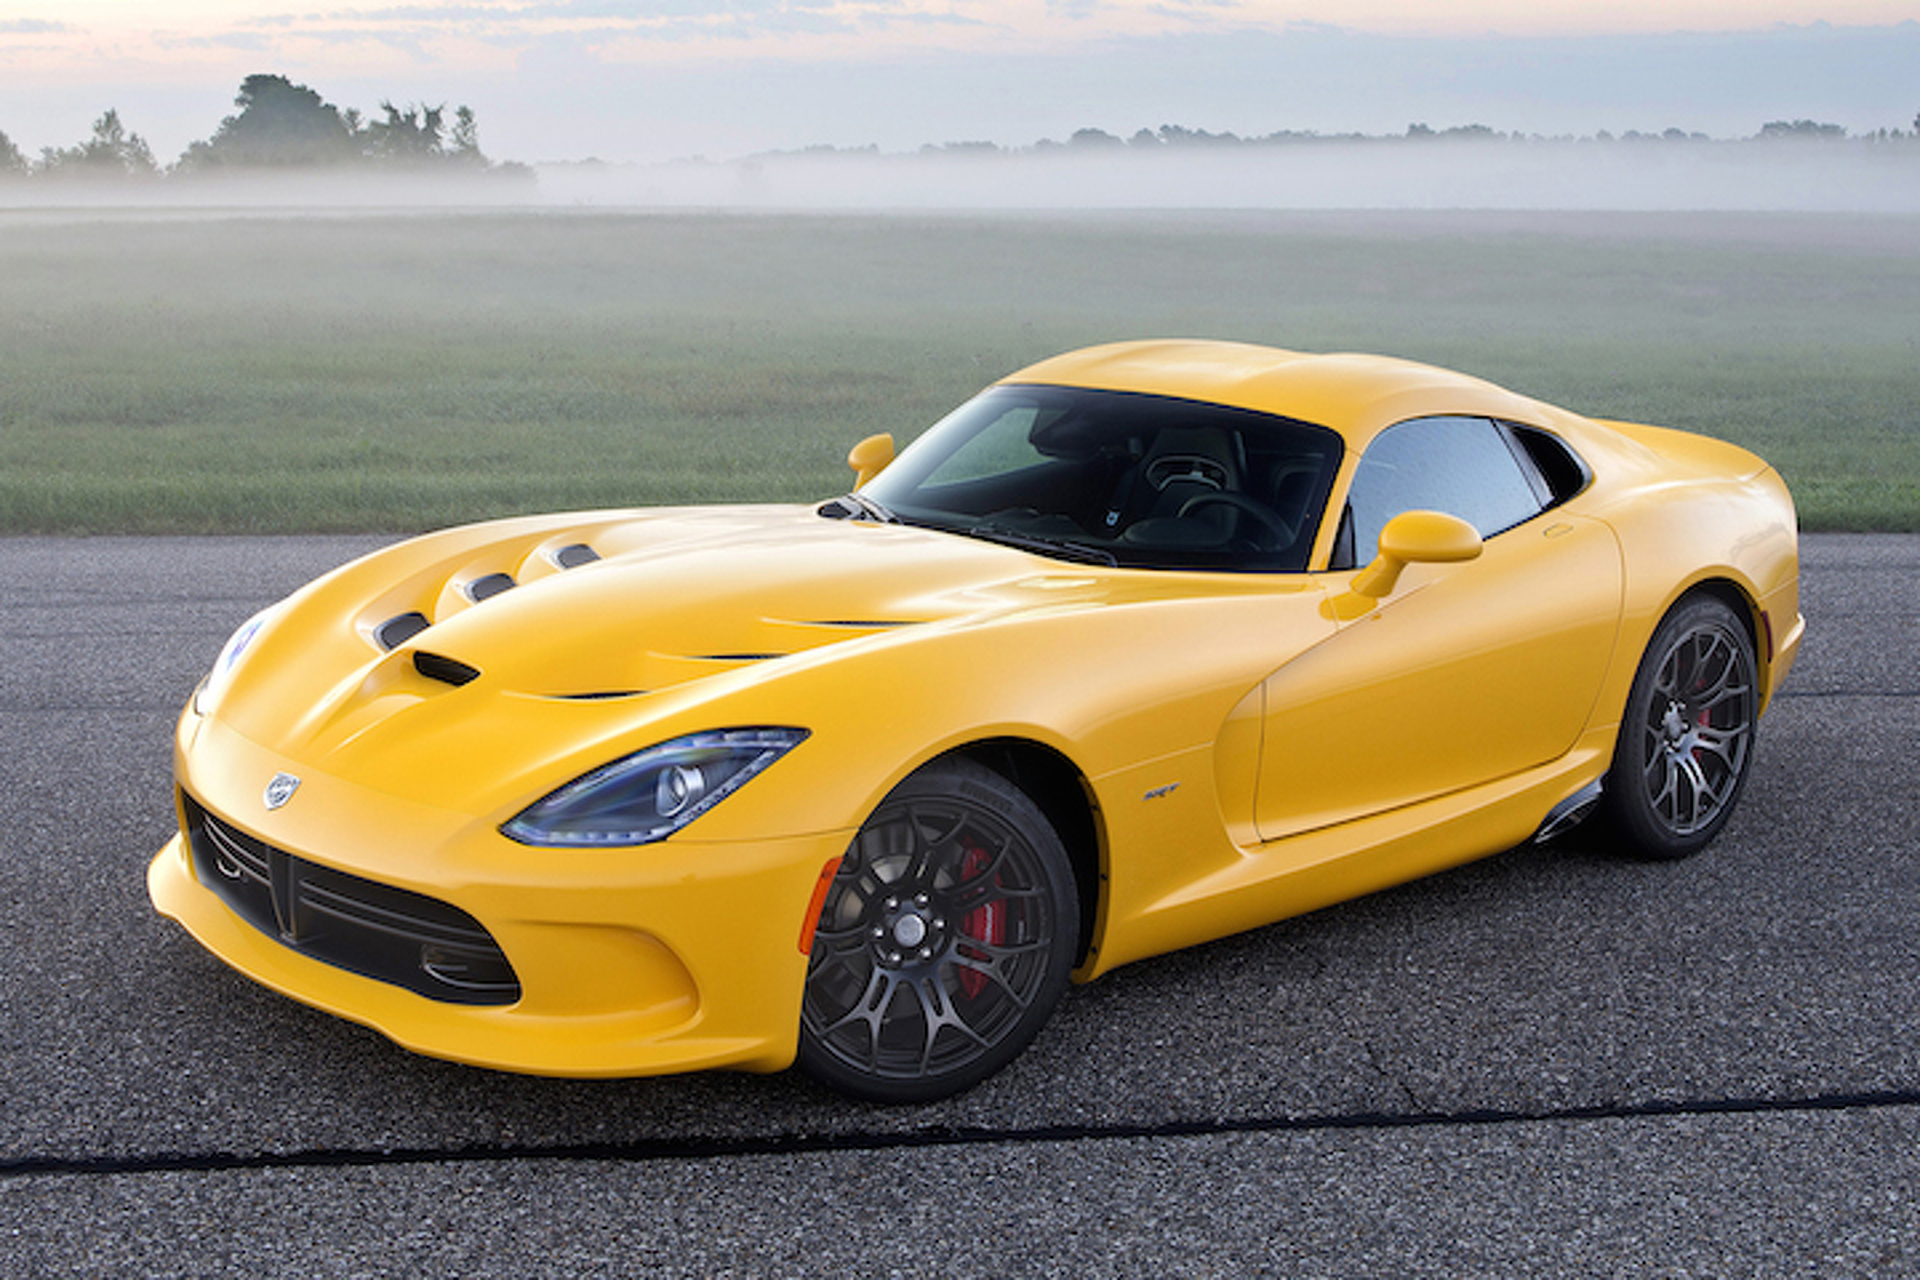 Hellcat Who? Dodge Might Put a Supercharged V10 in Viper